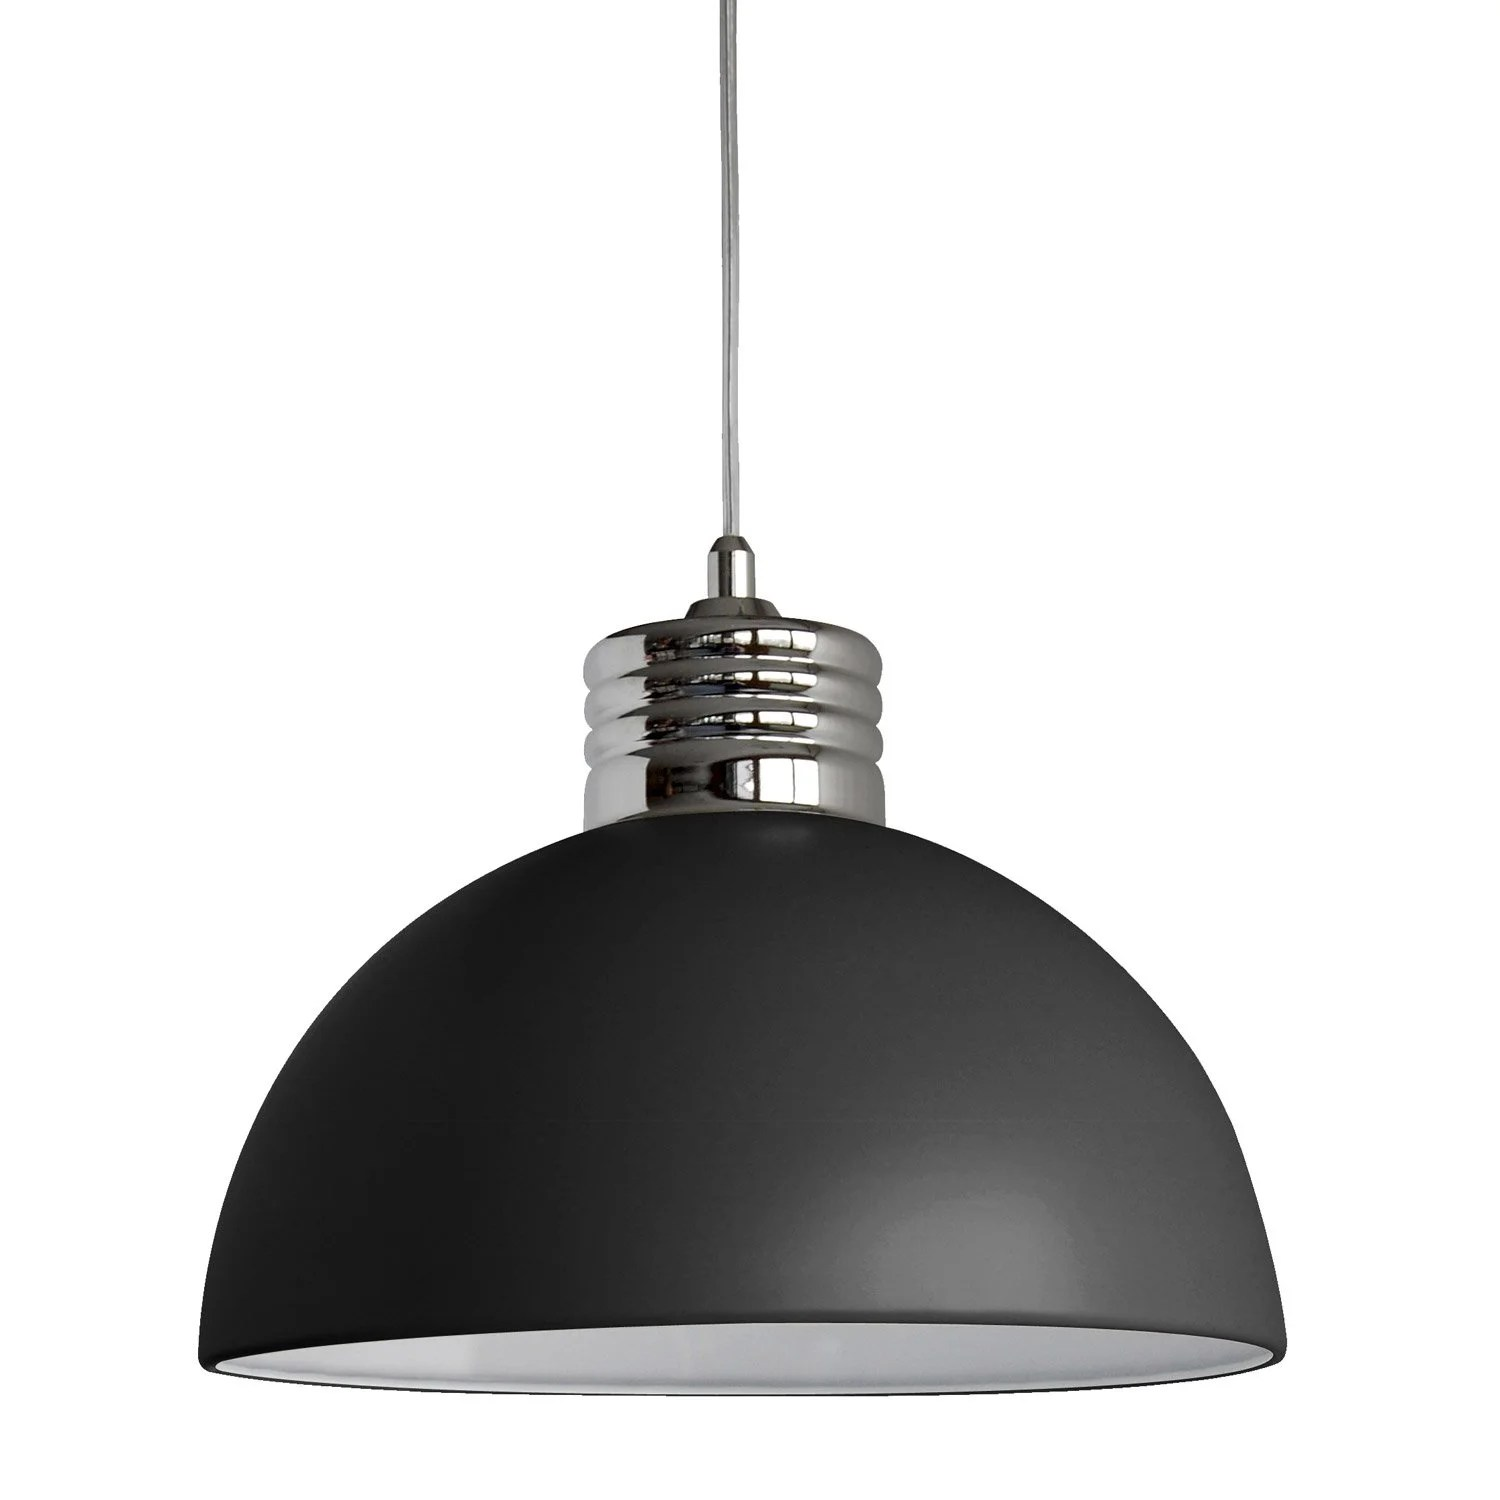 Leroy Merlin Luminaires Suspension Leroy Merlin Luminaire Suspension Trendy Top Gallery Of